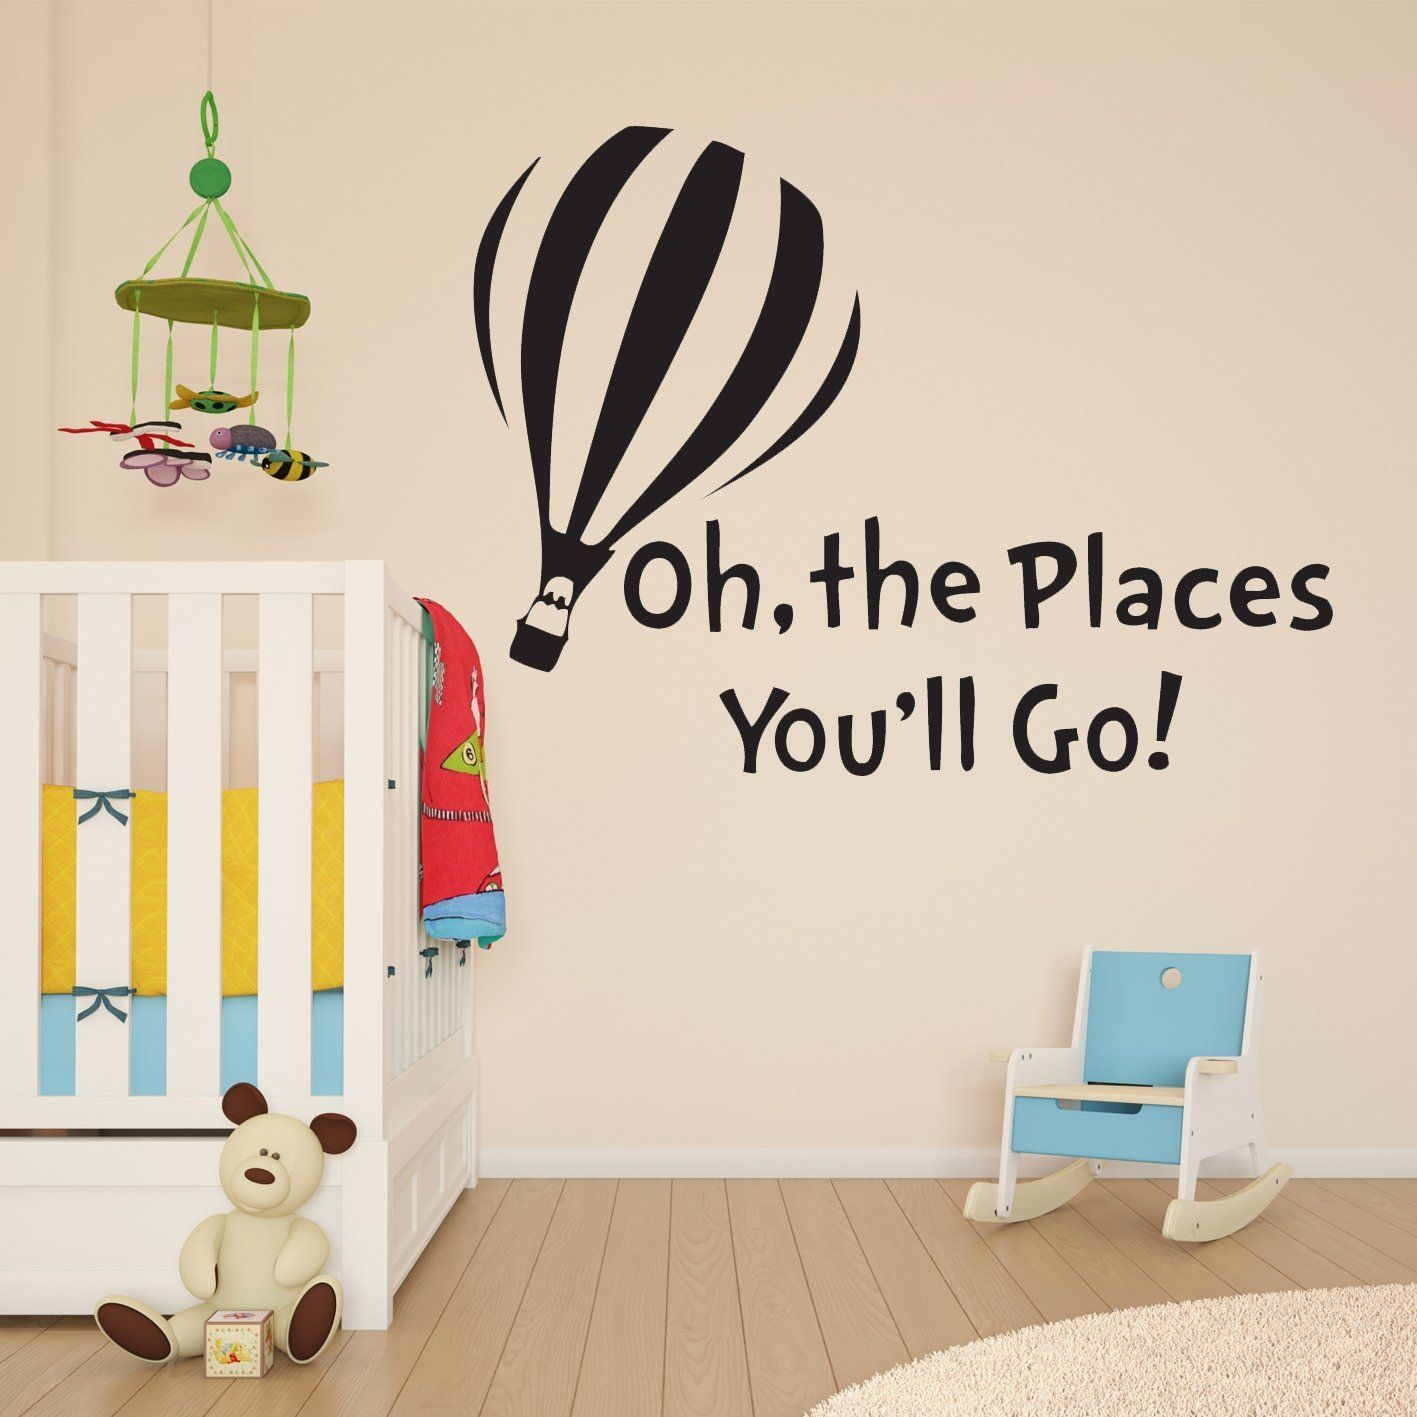 dr seuss oh the places you ll go with balloon children s wall dr seuss oh the places you ll go with balloon children s wall sticker vinyl mural